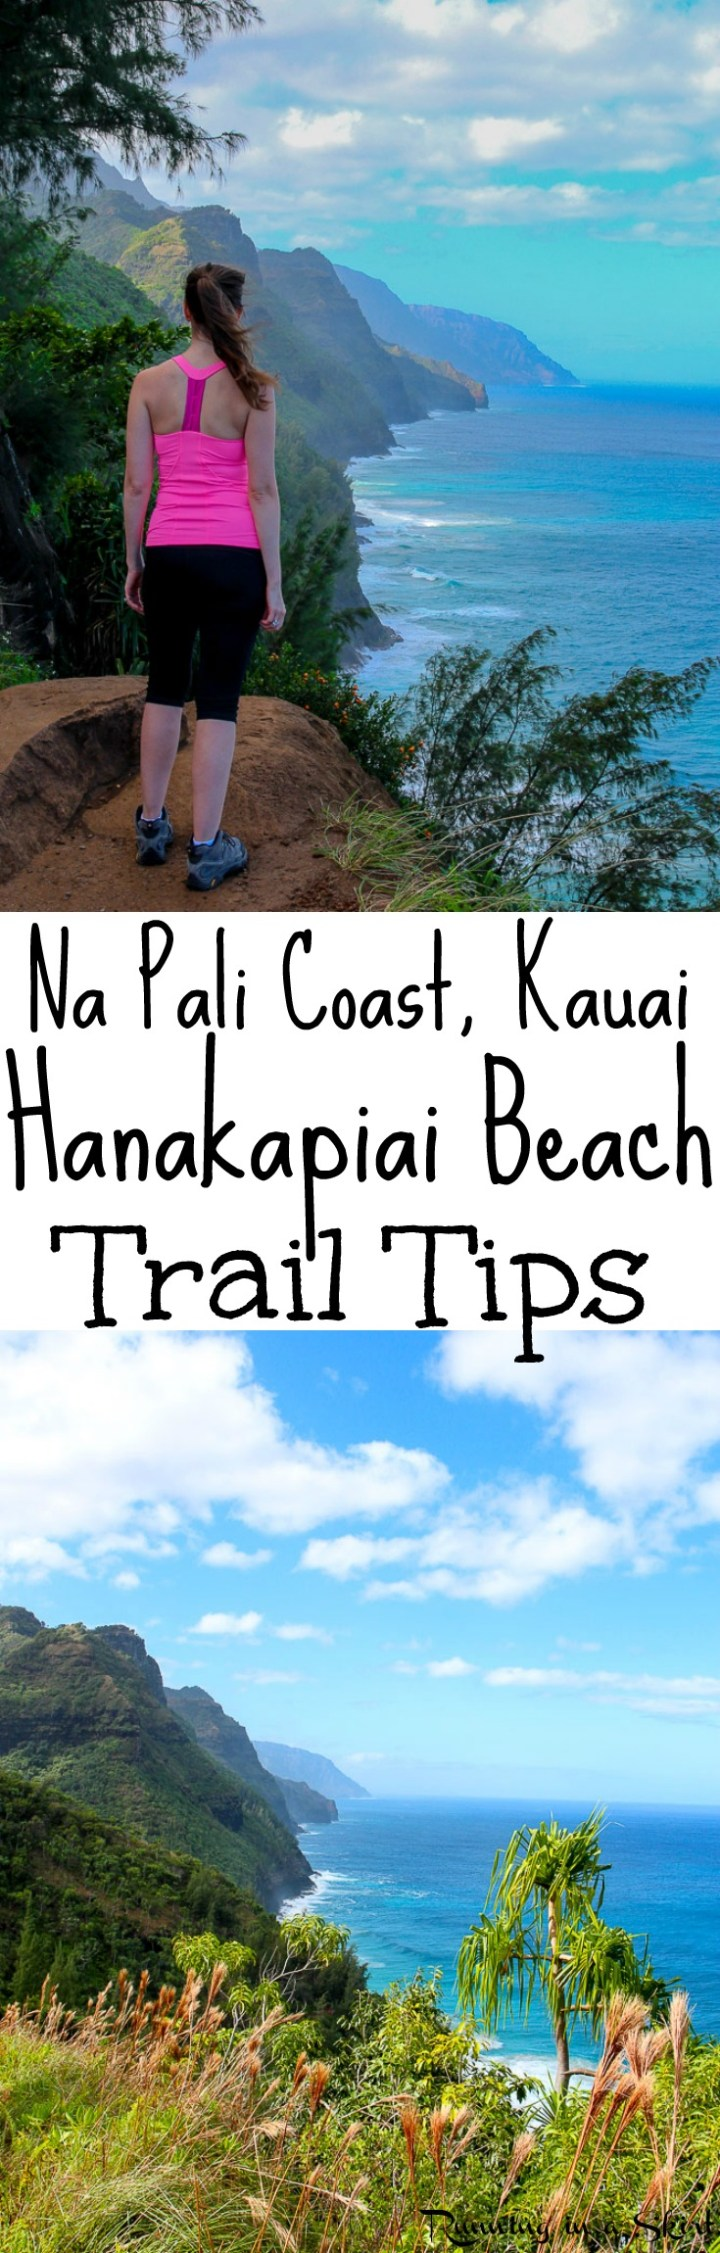 Tips for the Hanakapiai Trail on the Kalalau Trail in Kauai. This is one of the most beautiful hiking trails in Kauai, if not all of Hawaii. If you are doing any Kauai Hiking on the north shore and up for an adventure you have to do this! Includes photography of the entire journey and take aways. Total bucket lists trips to Hanakapiai Beach. / Running in a Skirt via @juliewunder